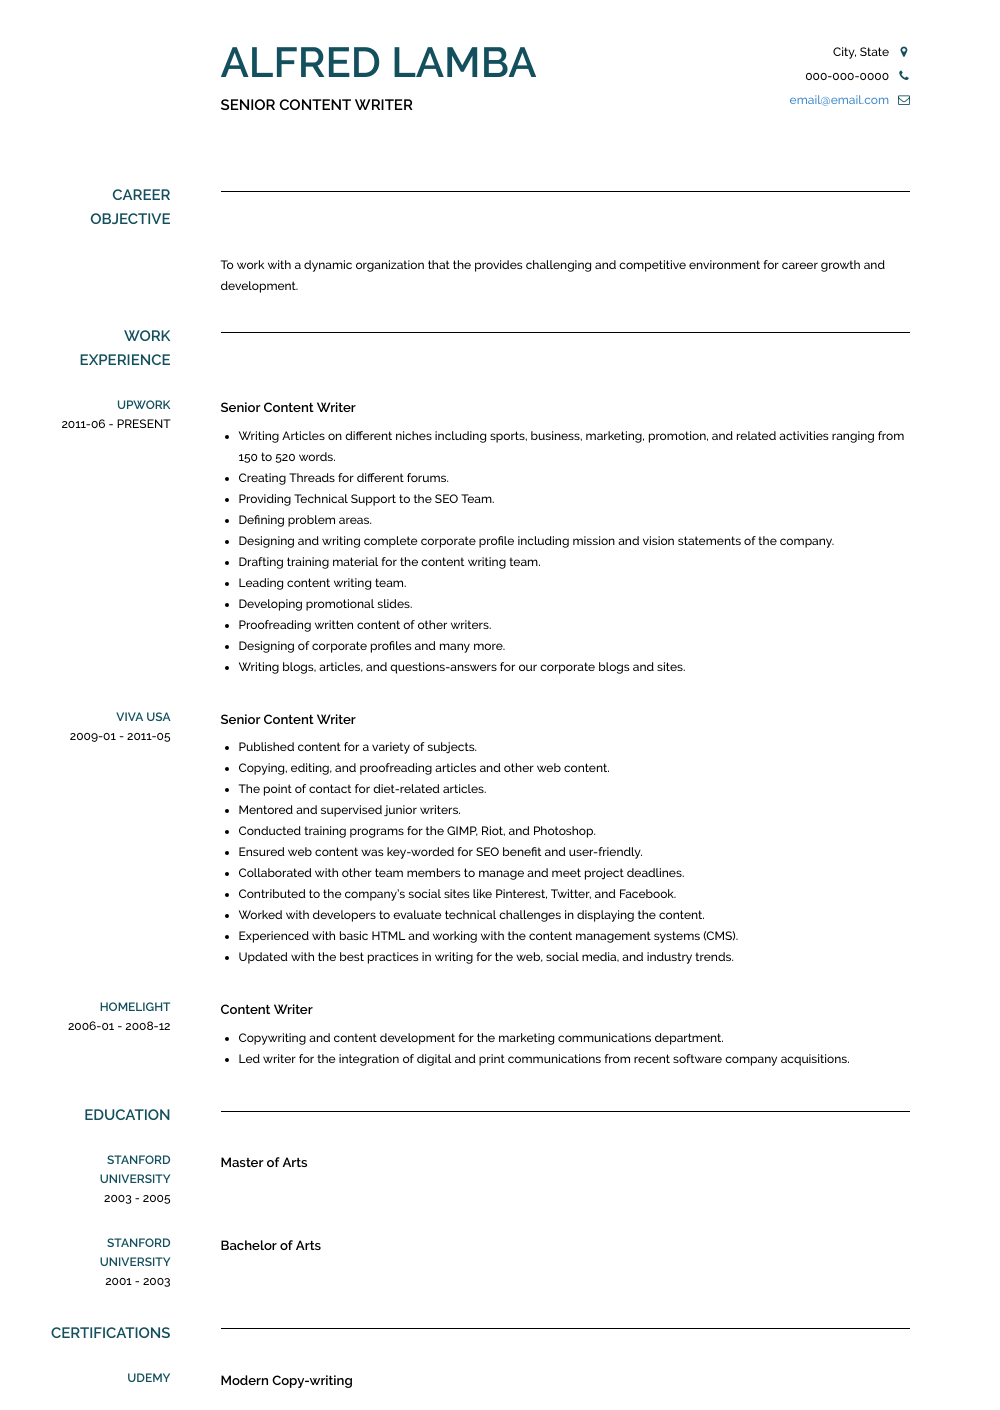 content writer resume samples   1 resource for templates  u0026 skills